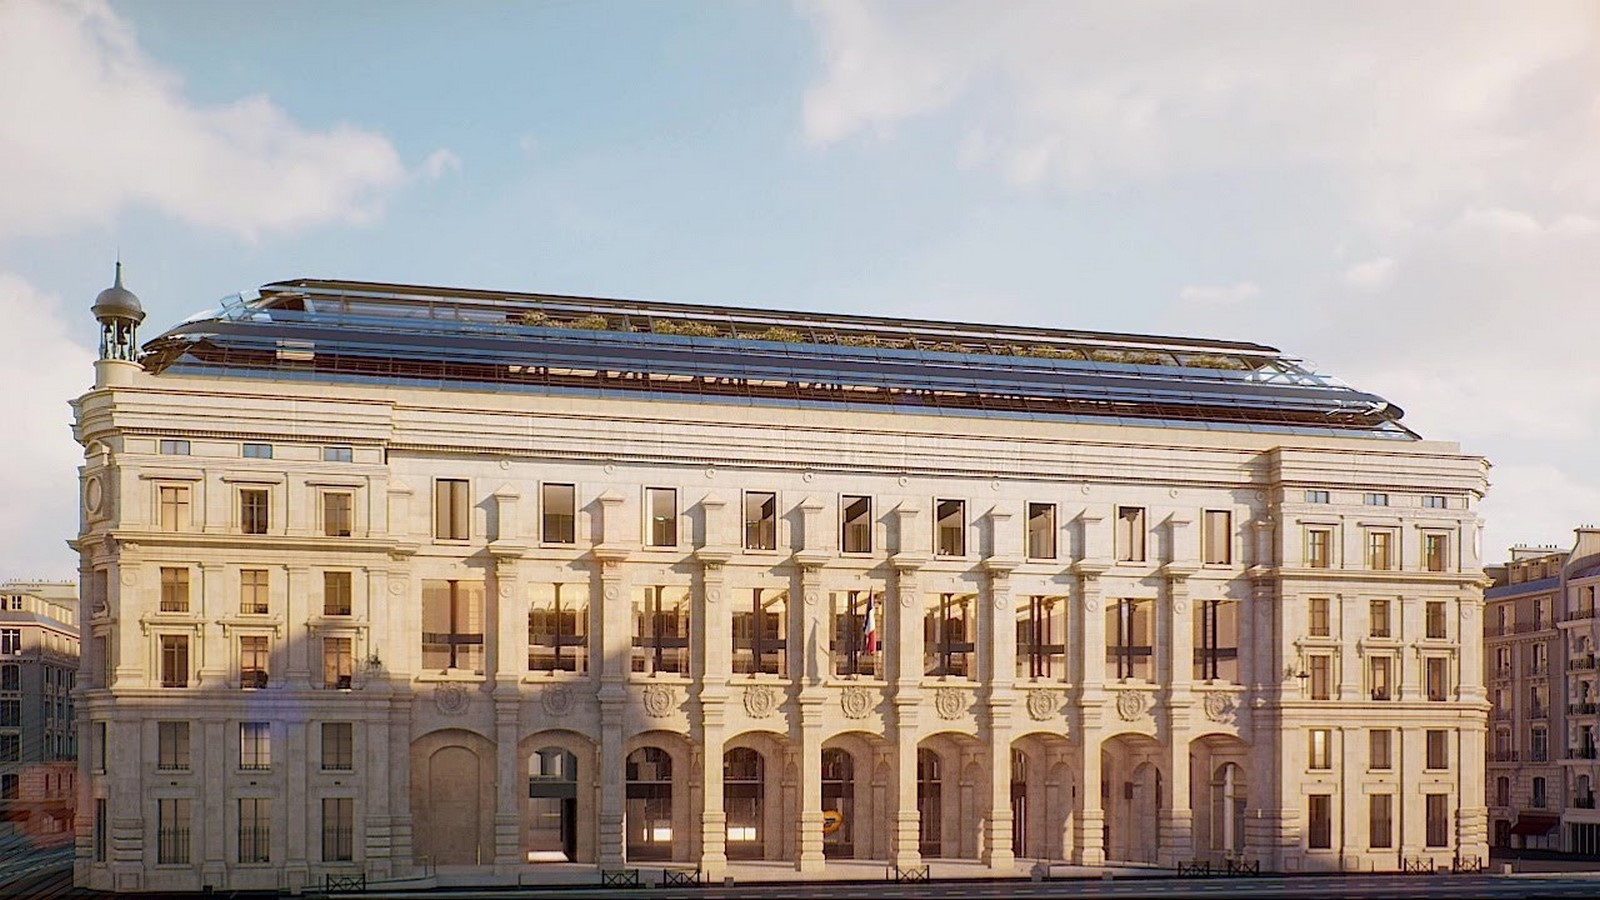 Paris' Industrial Post Office Building converted into A Mixed-Use Block by Dominique Perrault Architecture - Sheet2